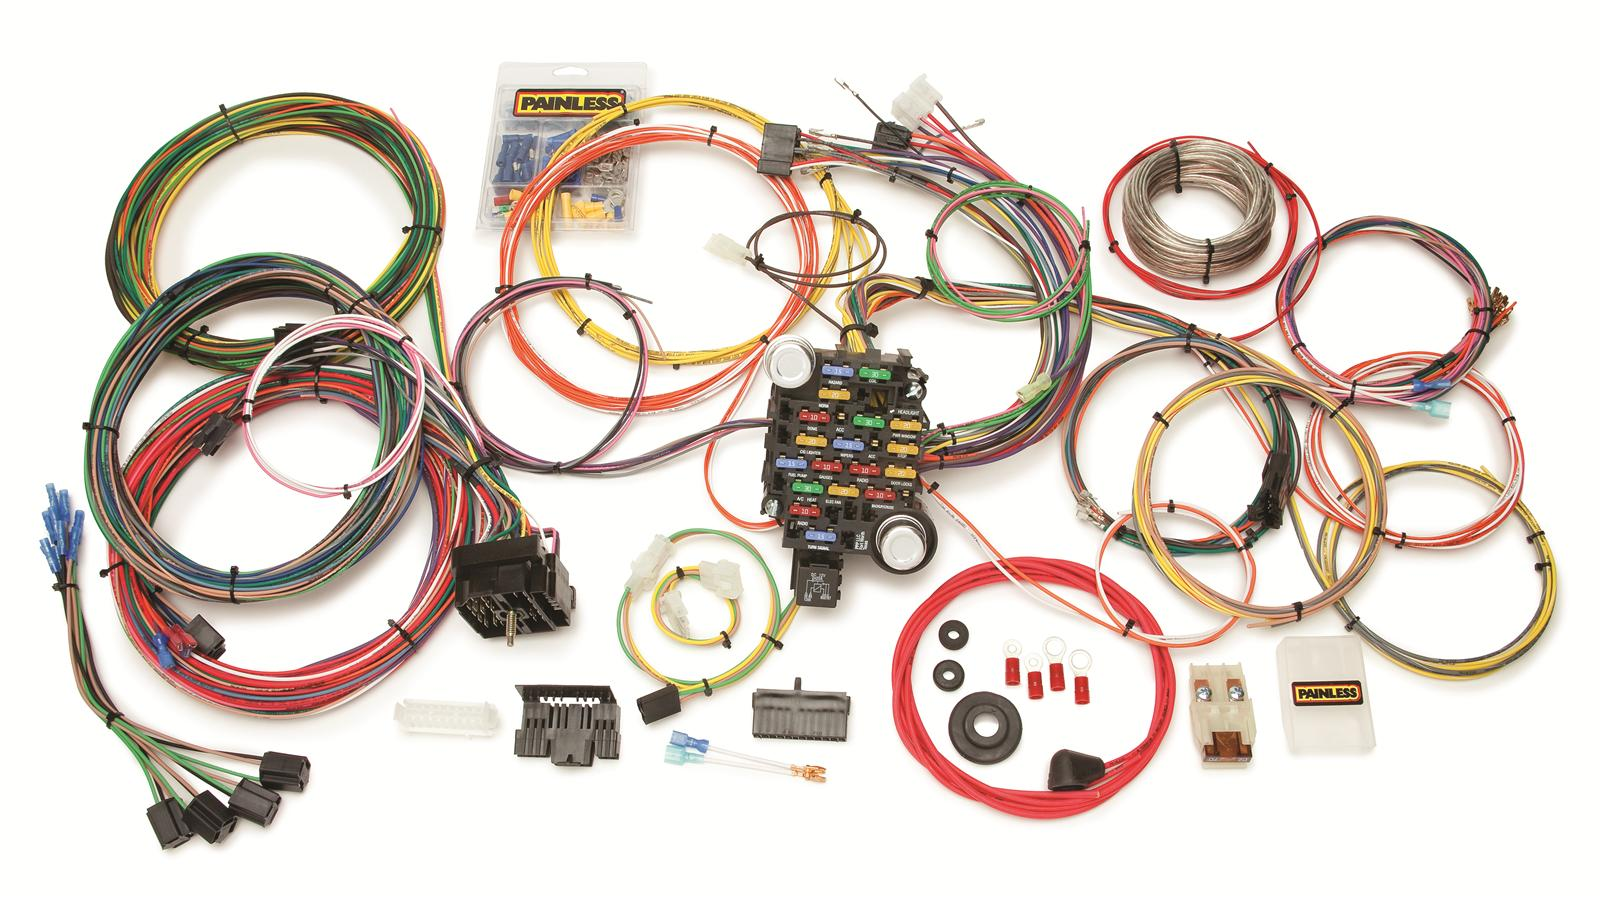 prf 10205_xl painless performance gmc chevy truck harnesses 10205 free gm truck wiring harness at fashall.co